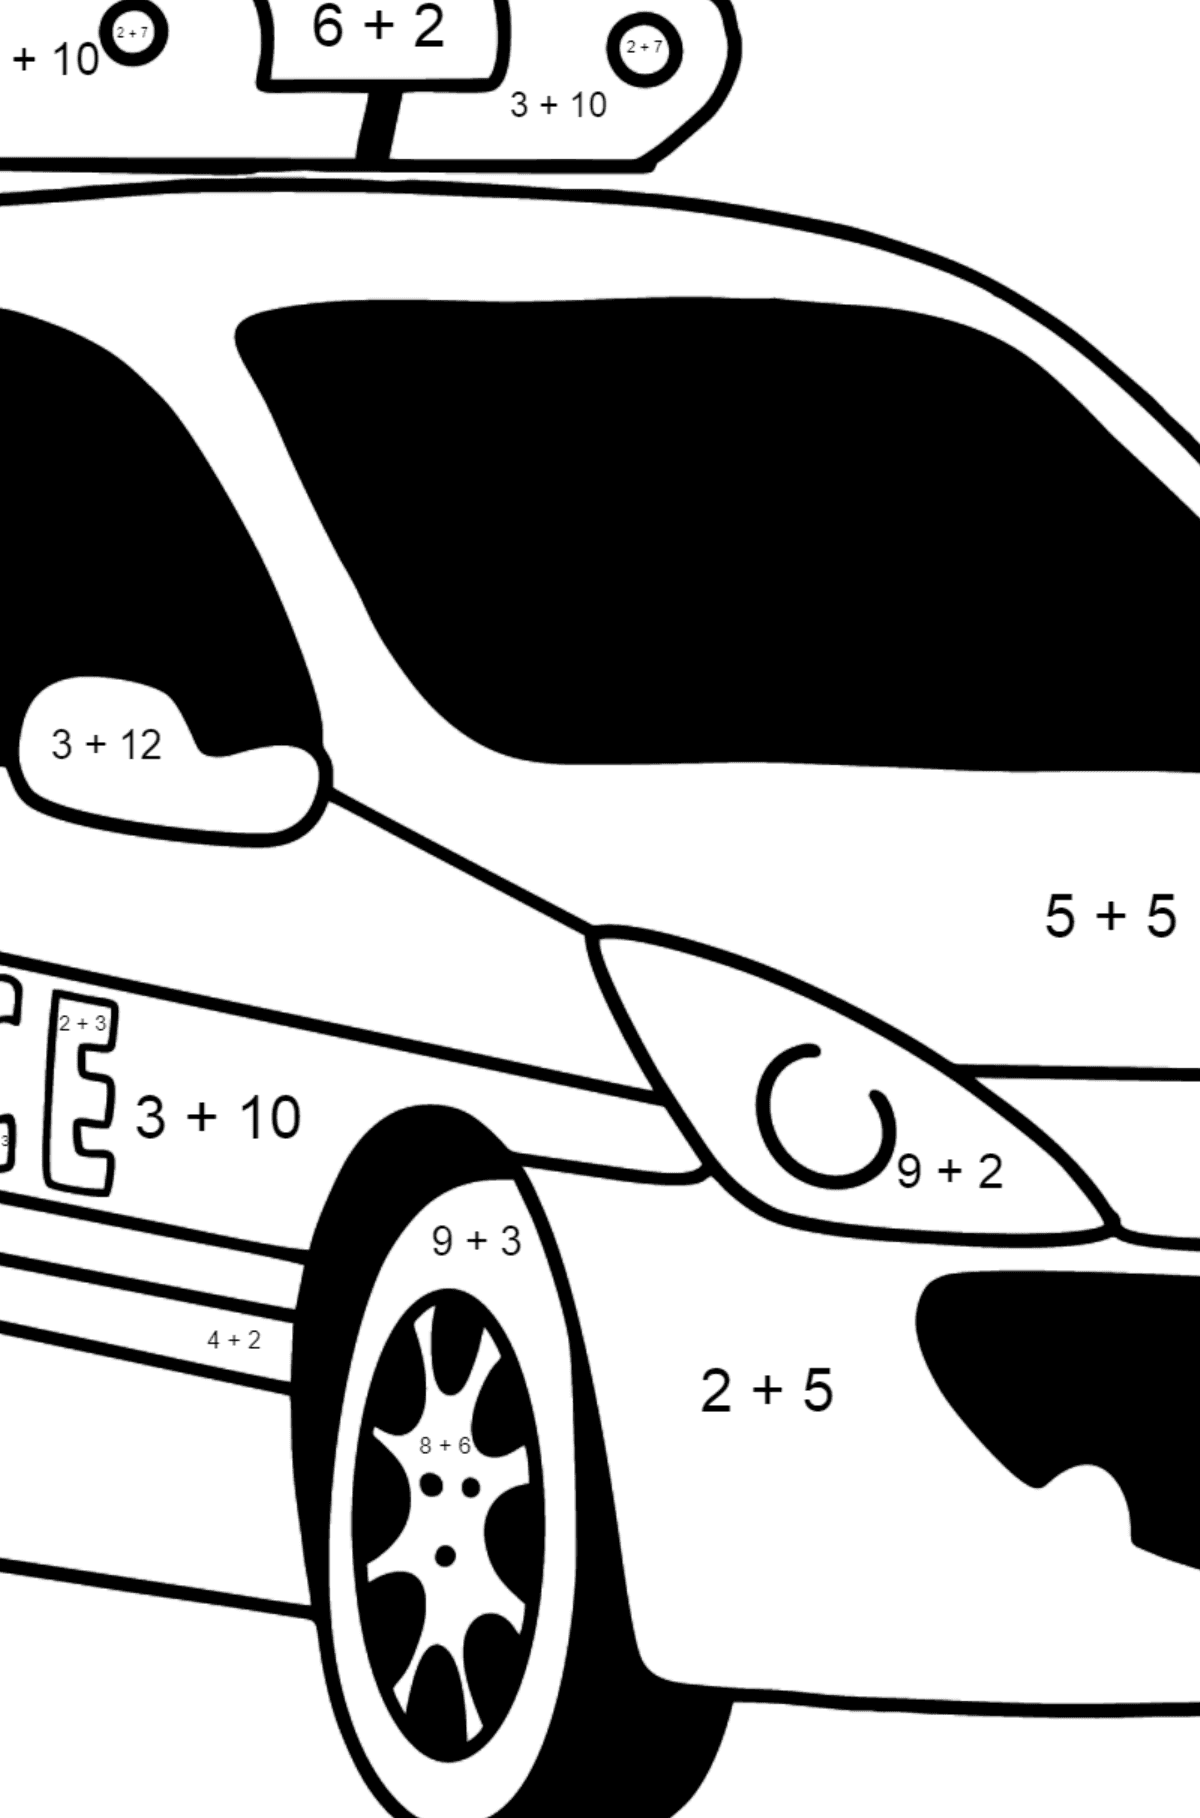 Police Car in France coloring page - Math Coloring - Addition for Kids